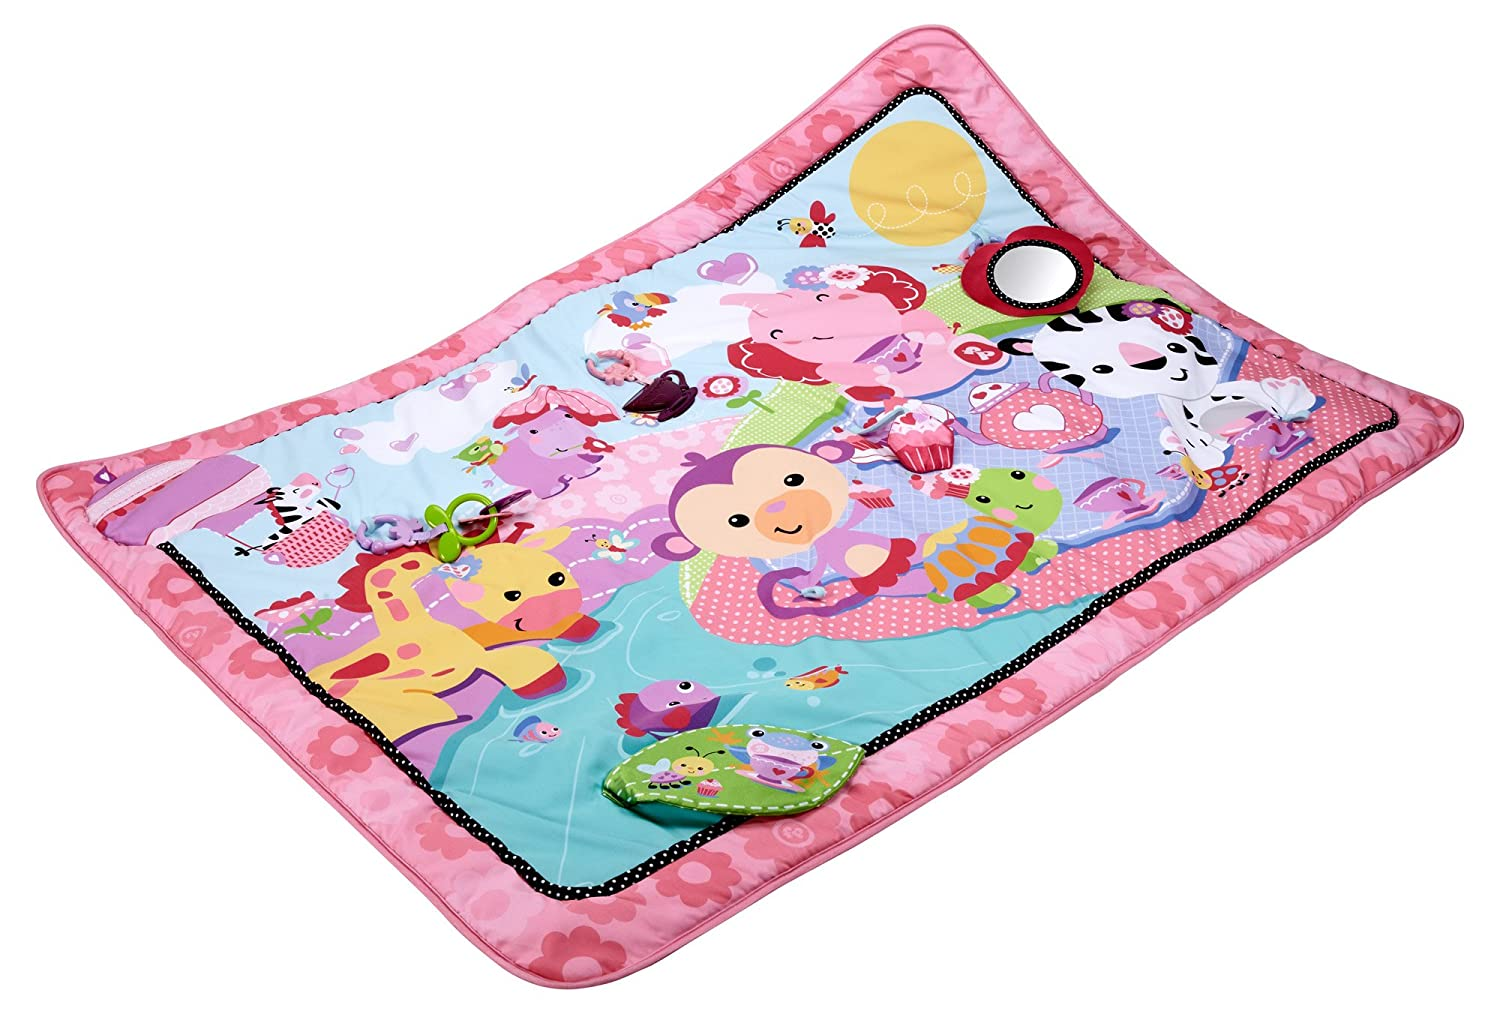 Top 10 Best Baby Playmats And Activity Gyms 2018 2019 On Flipboard By Xayuk